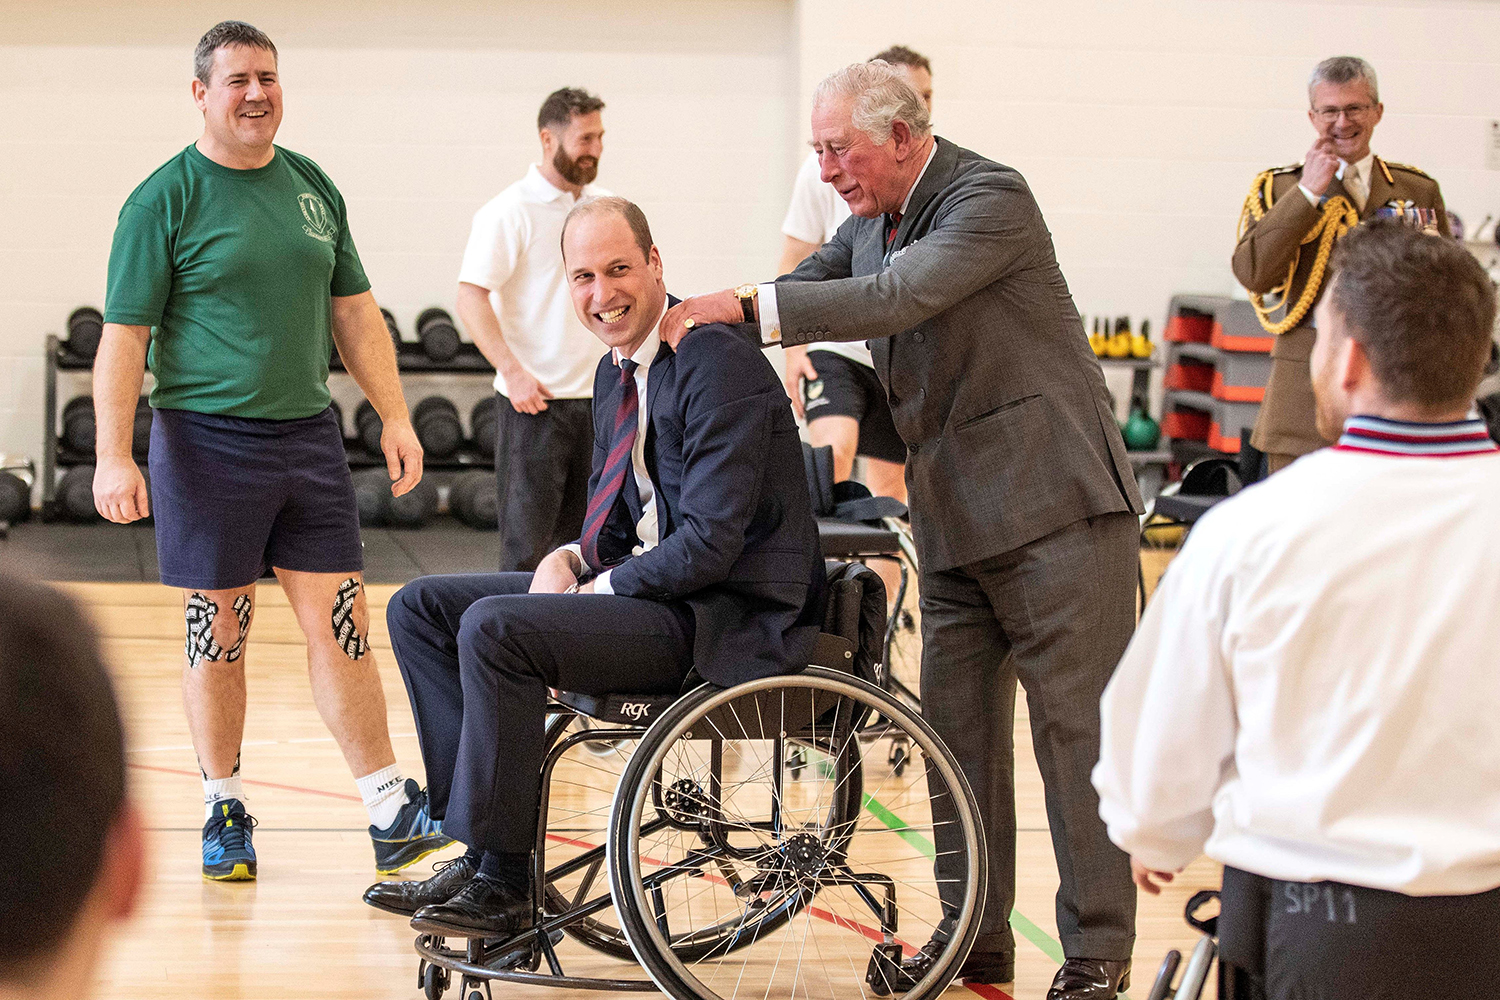 Britain's Prince Charles consoles his son Britain's Prince William after he threw a basketball from a wheelchair but failed to get it into the hoop during their visit to the Defence Medical Rehabilitation Centre in Loughborough, central England, on Feb. 11. RICHARD POHLE/AFP via Getty Images